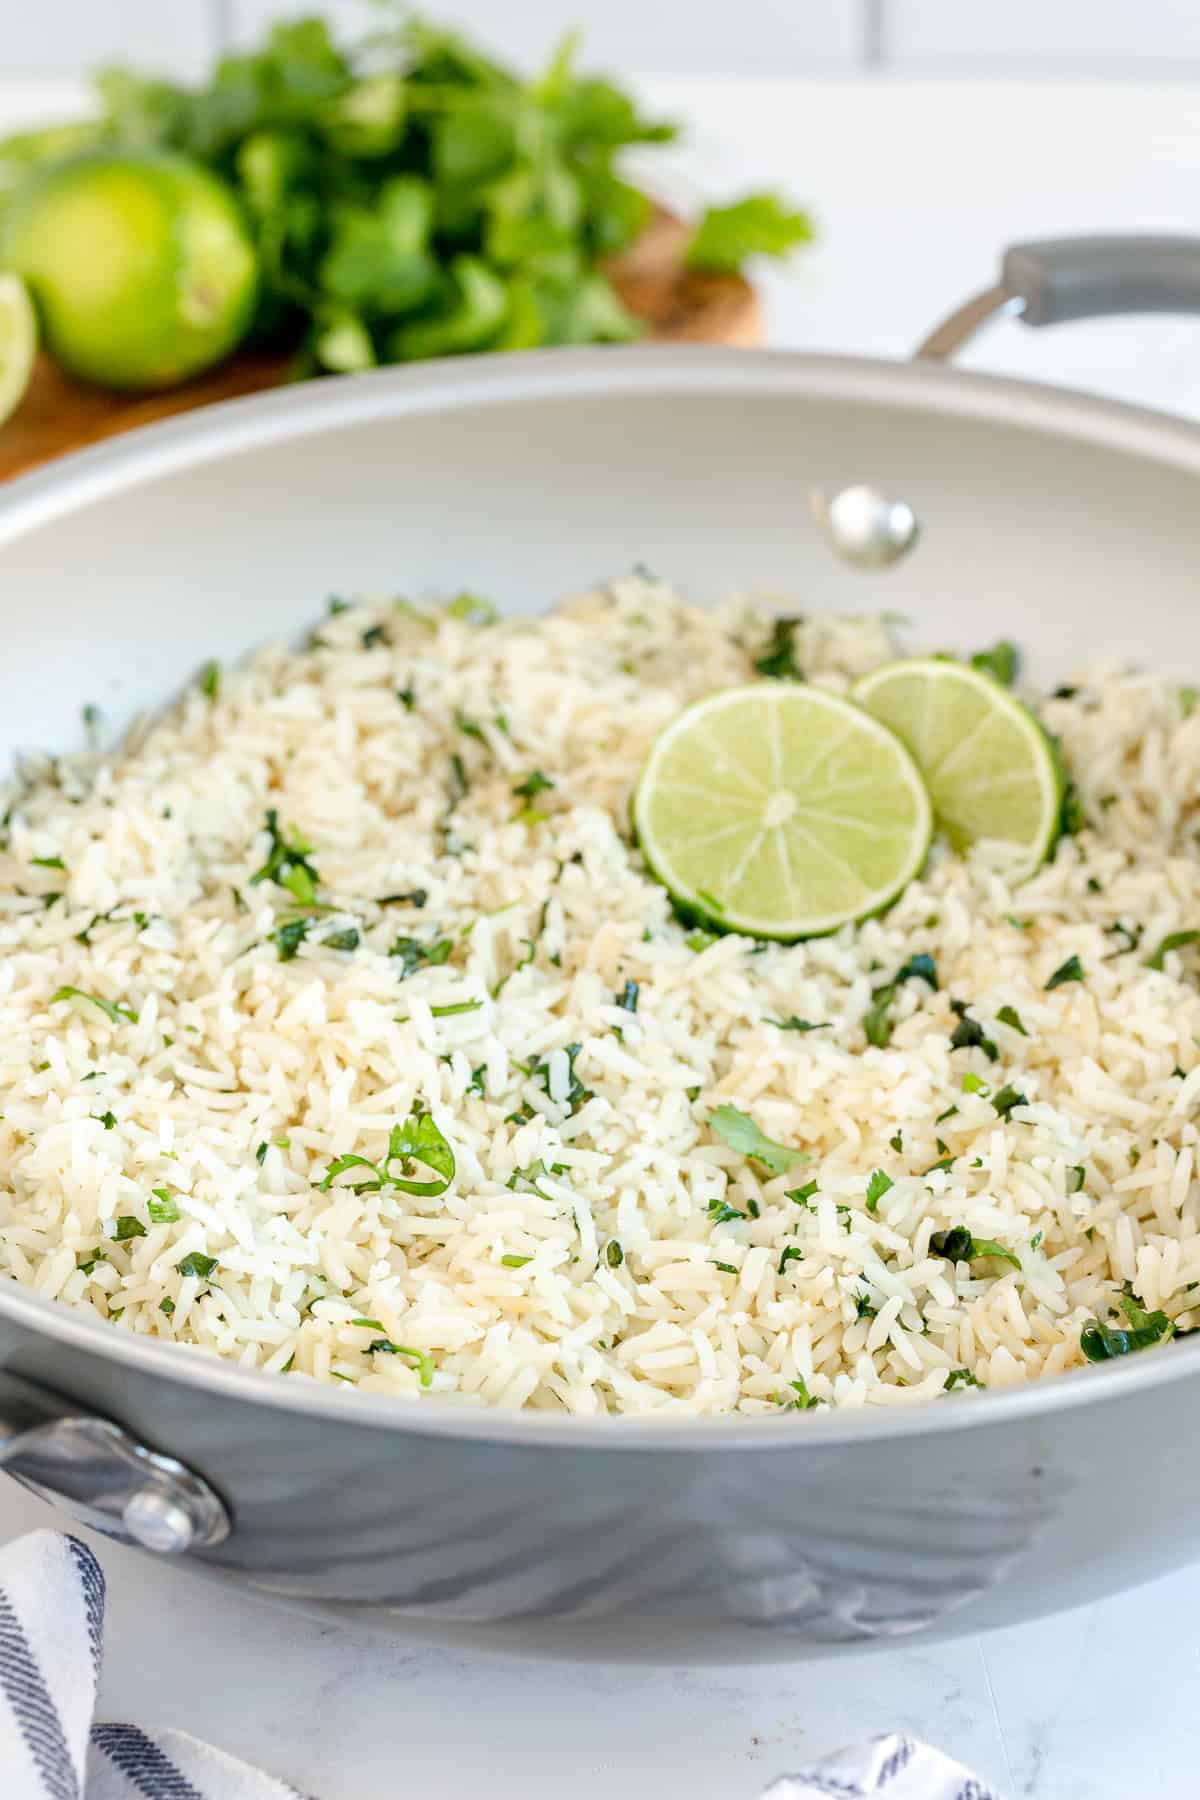 A skillet filled with white rice, cilantro and lime slices.